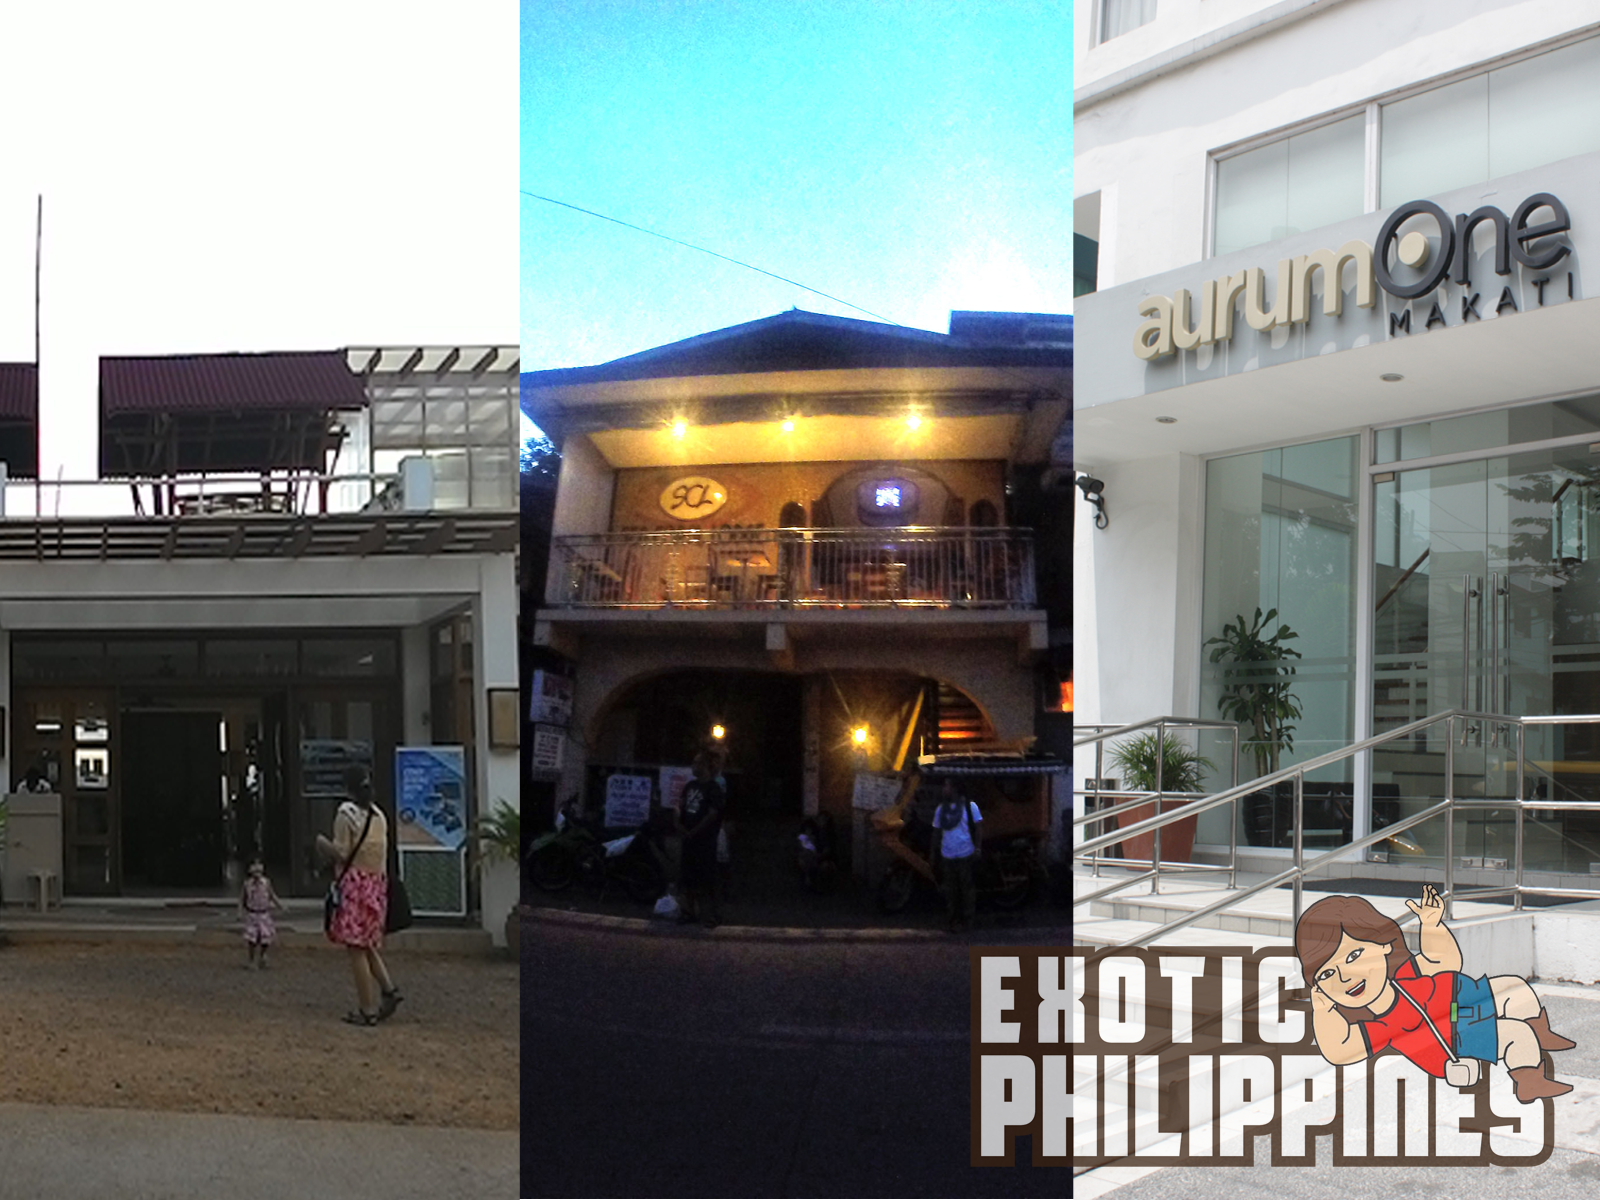 How Exotic Philippines Travel Blog Give the Hotel Review and Ratings